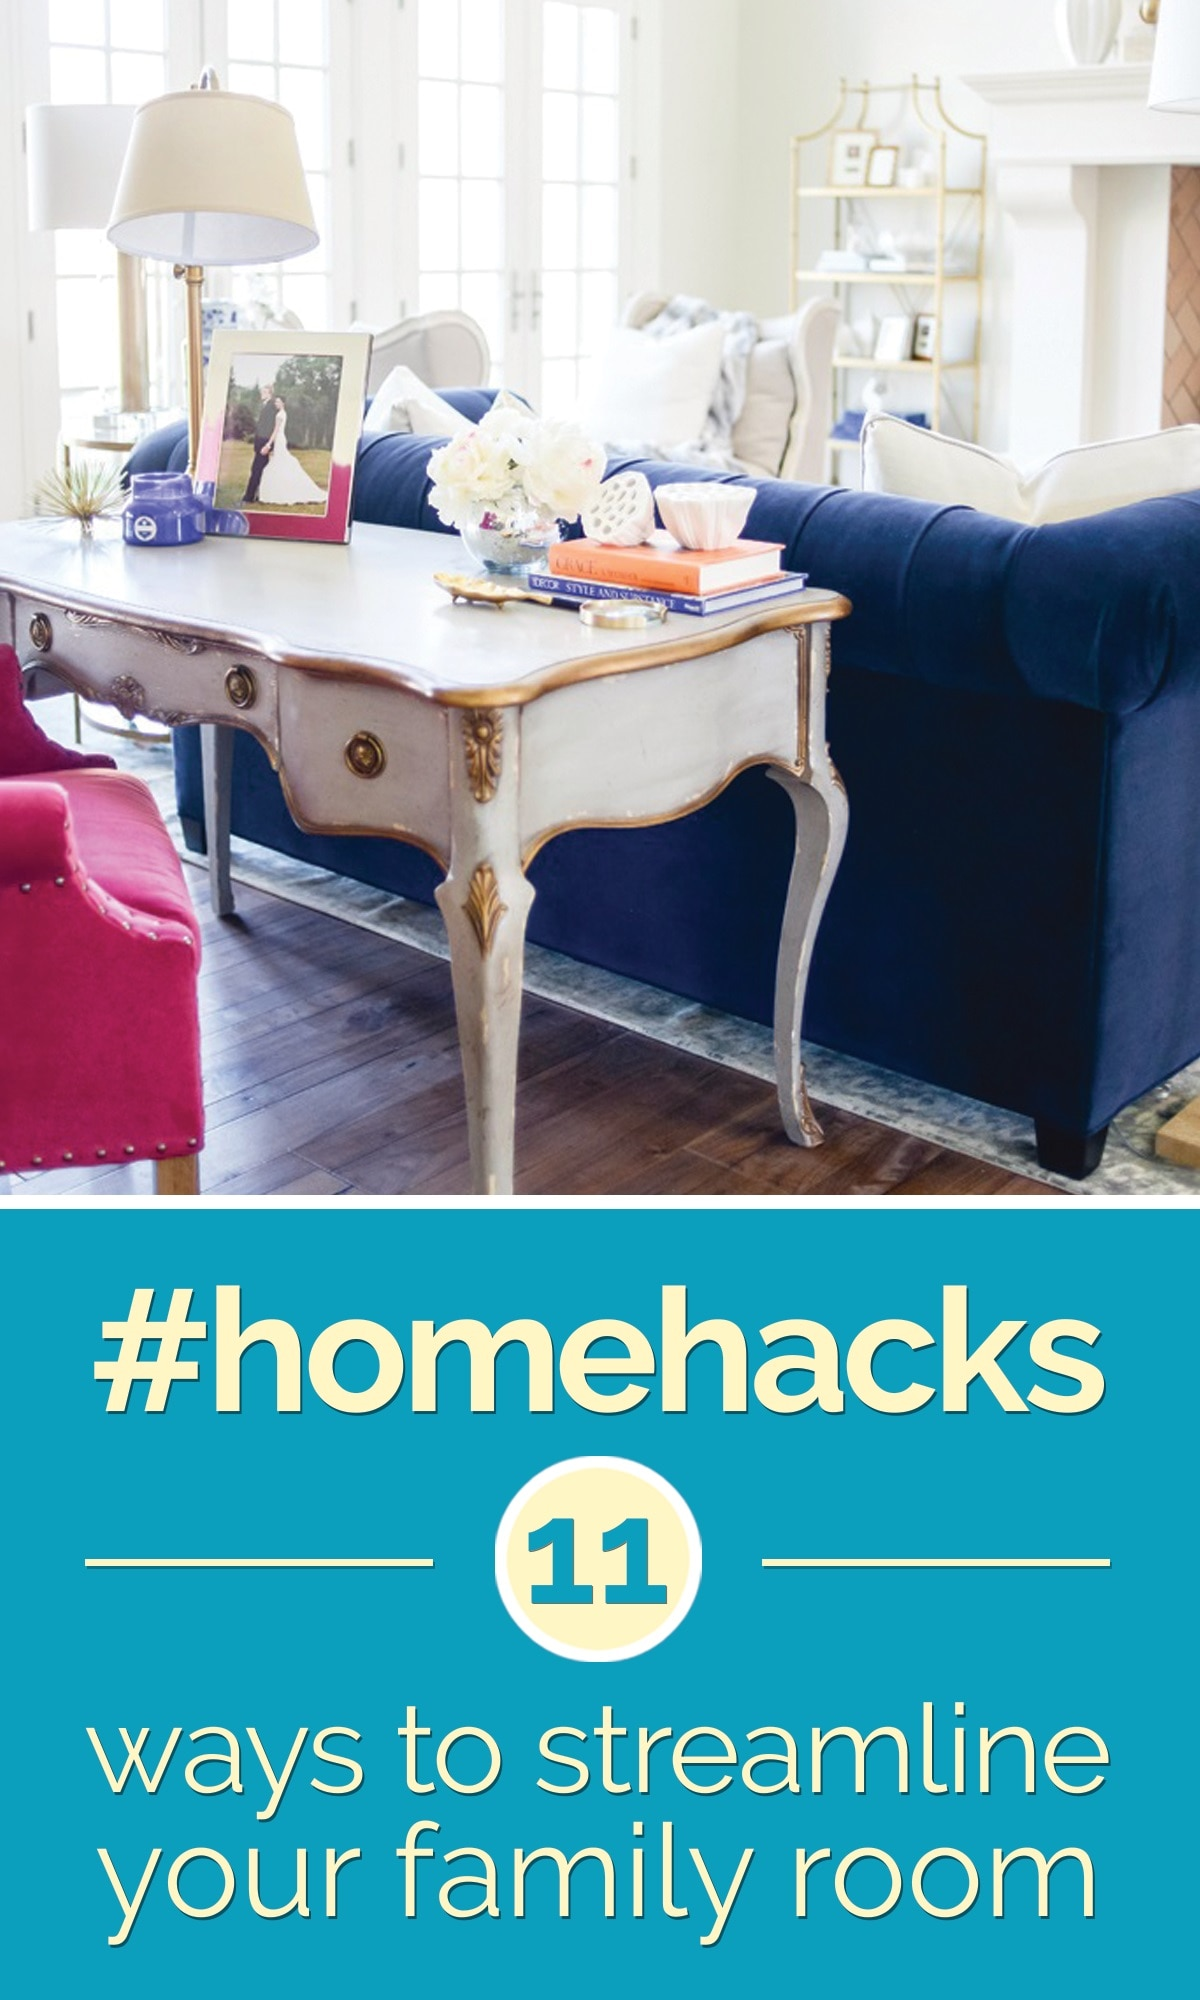 diy-homehacks-streamline-family-room